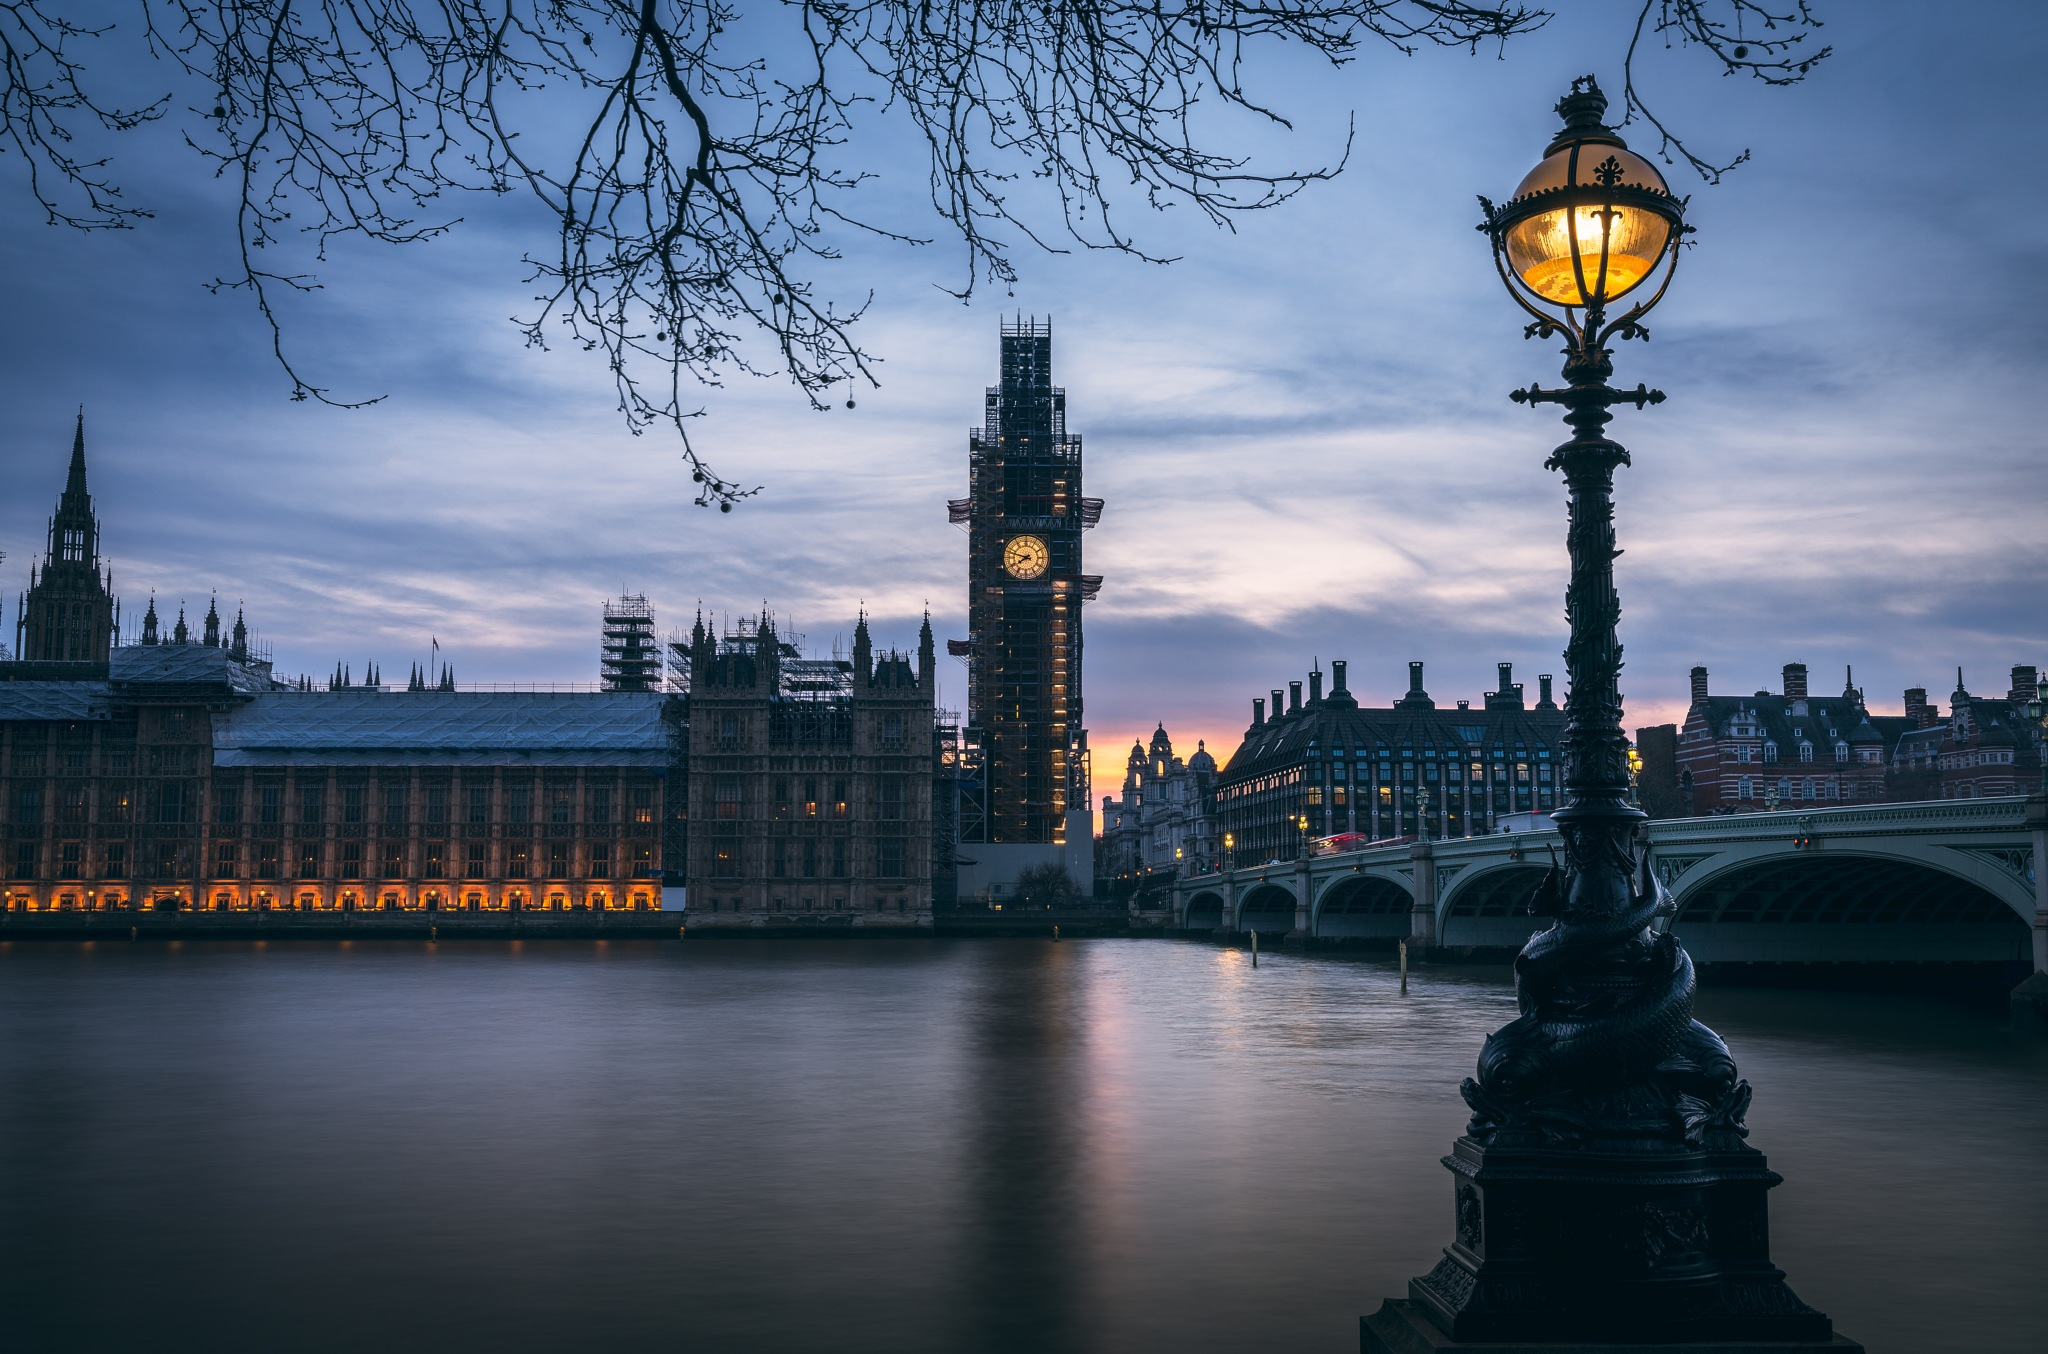 Westminster Twilight by David Abbs